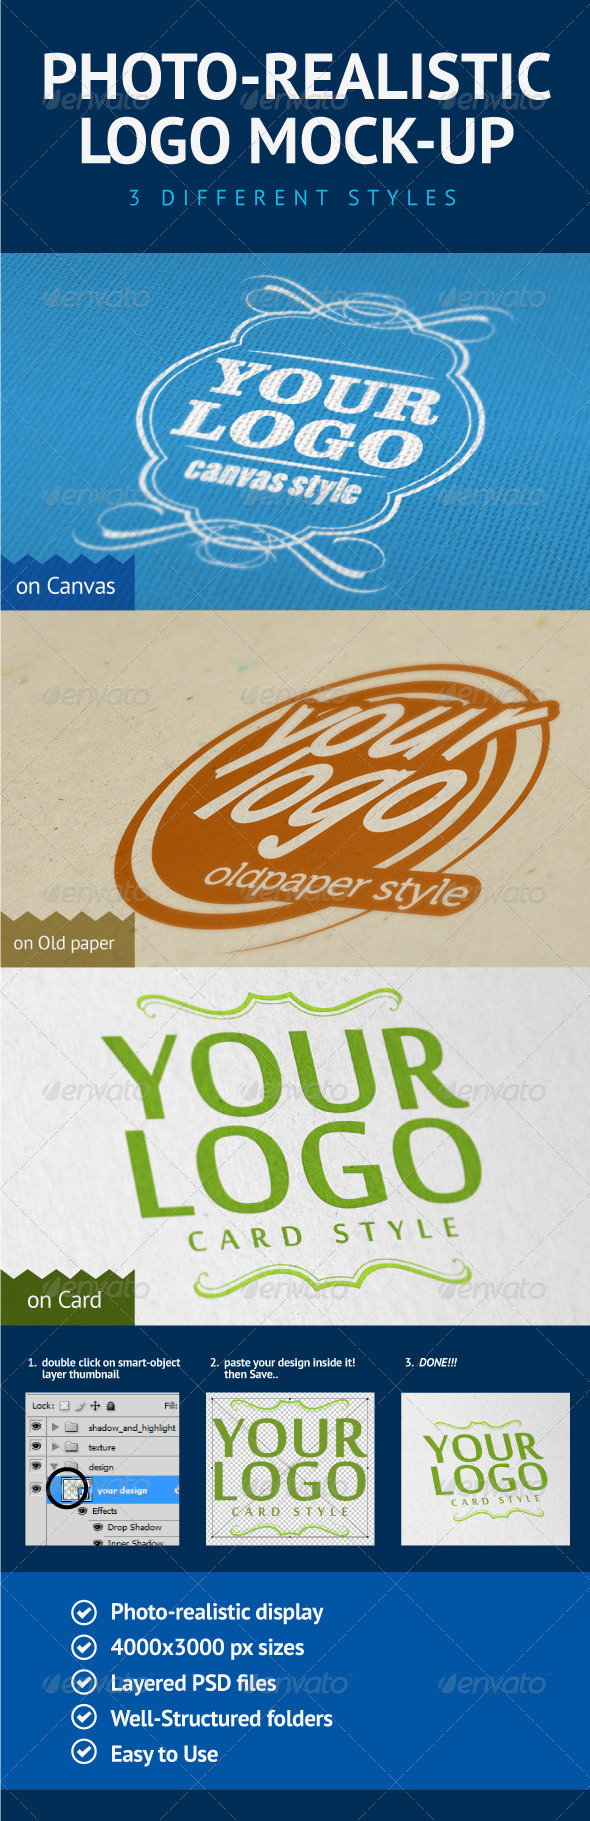 Photo-Realistic Logo Mock-Up - Logo Product Mock-Ups